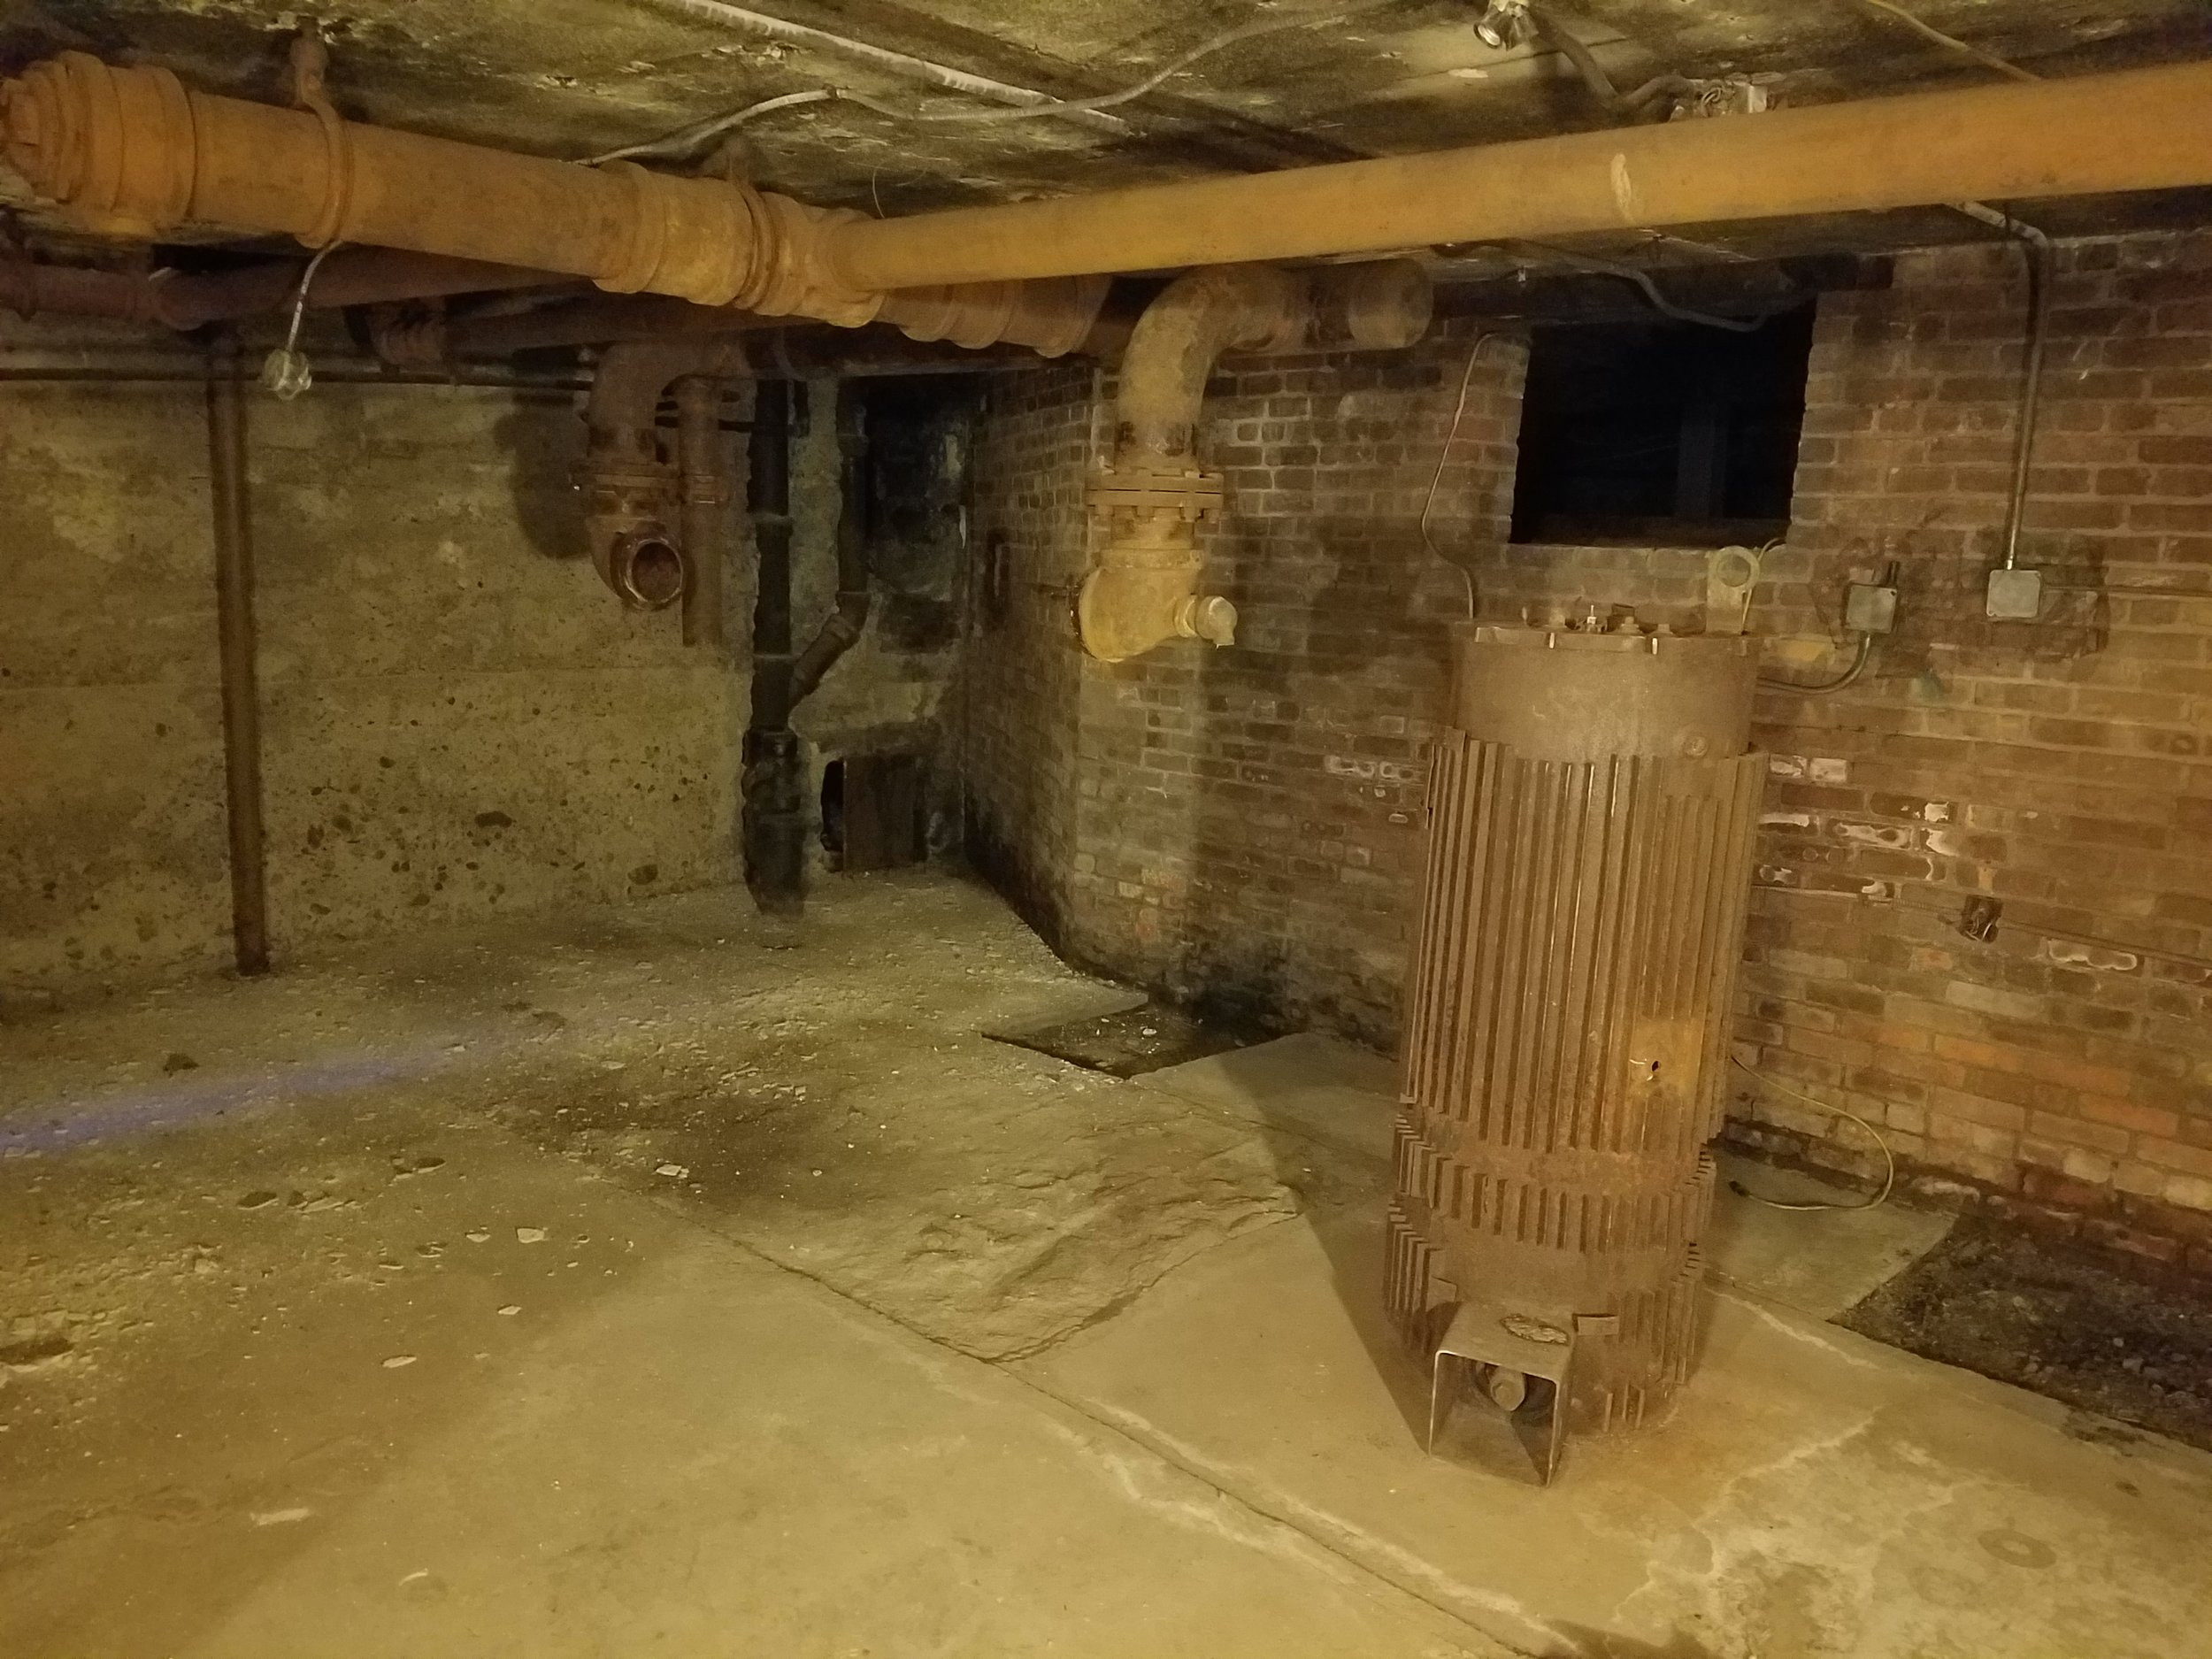 A picture of the very scary looking basement.